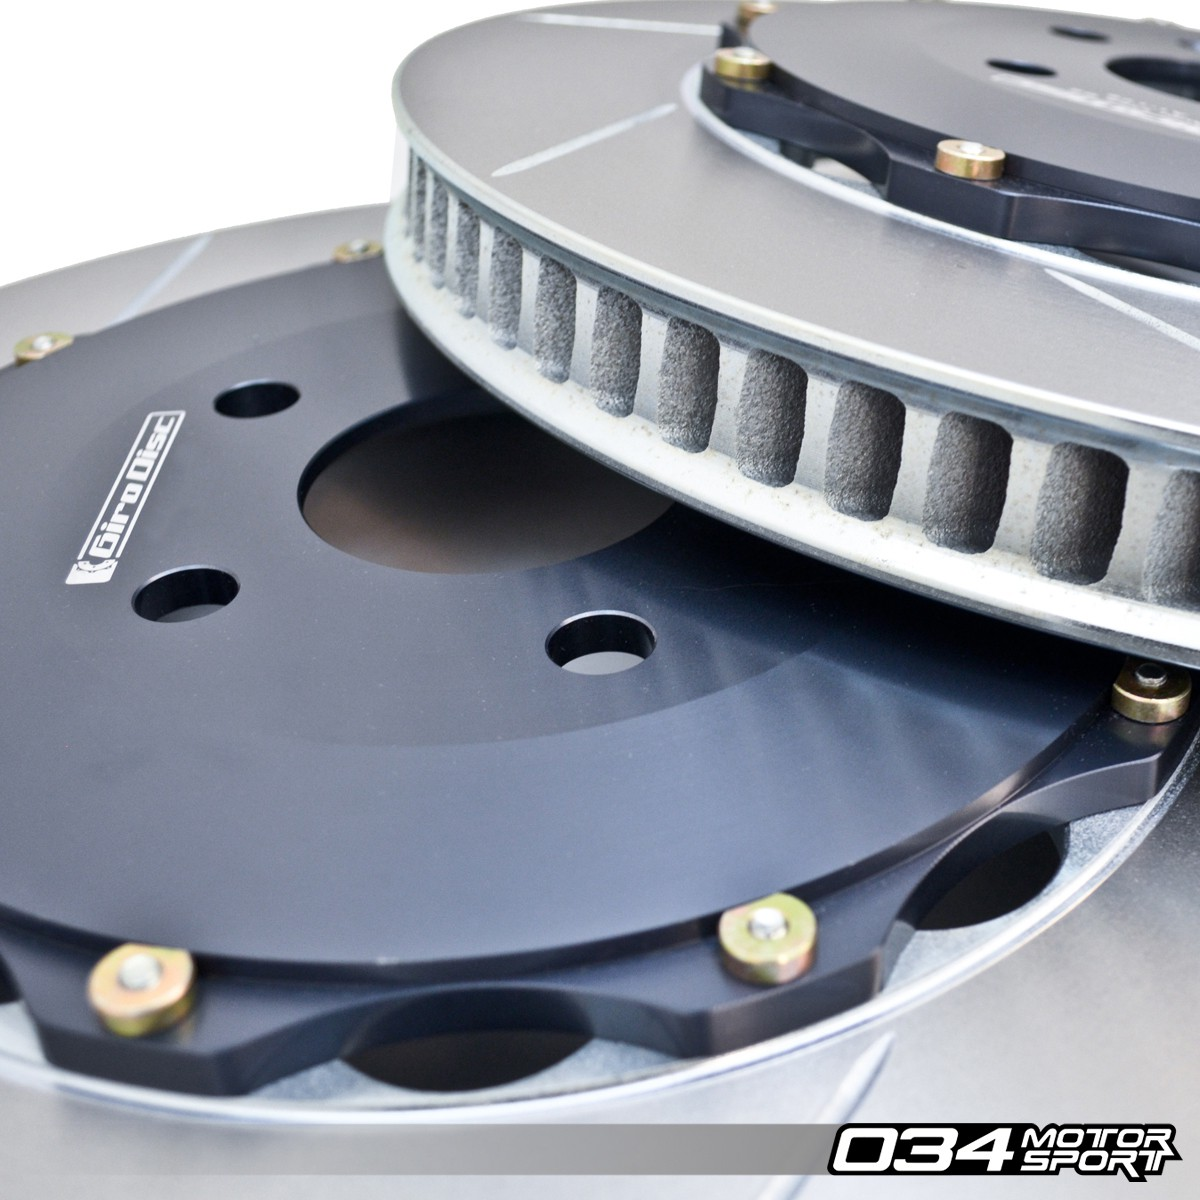 GiroDisc Front 2-Piece Floating Rotor Pair for B8/B8.5 Audi RS5, C5 RS6 & R8 | GIR-A1-034